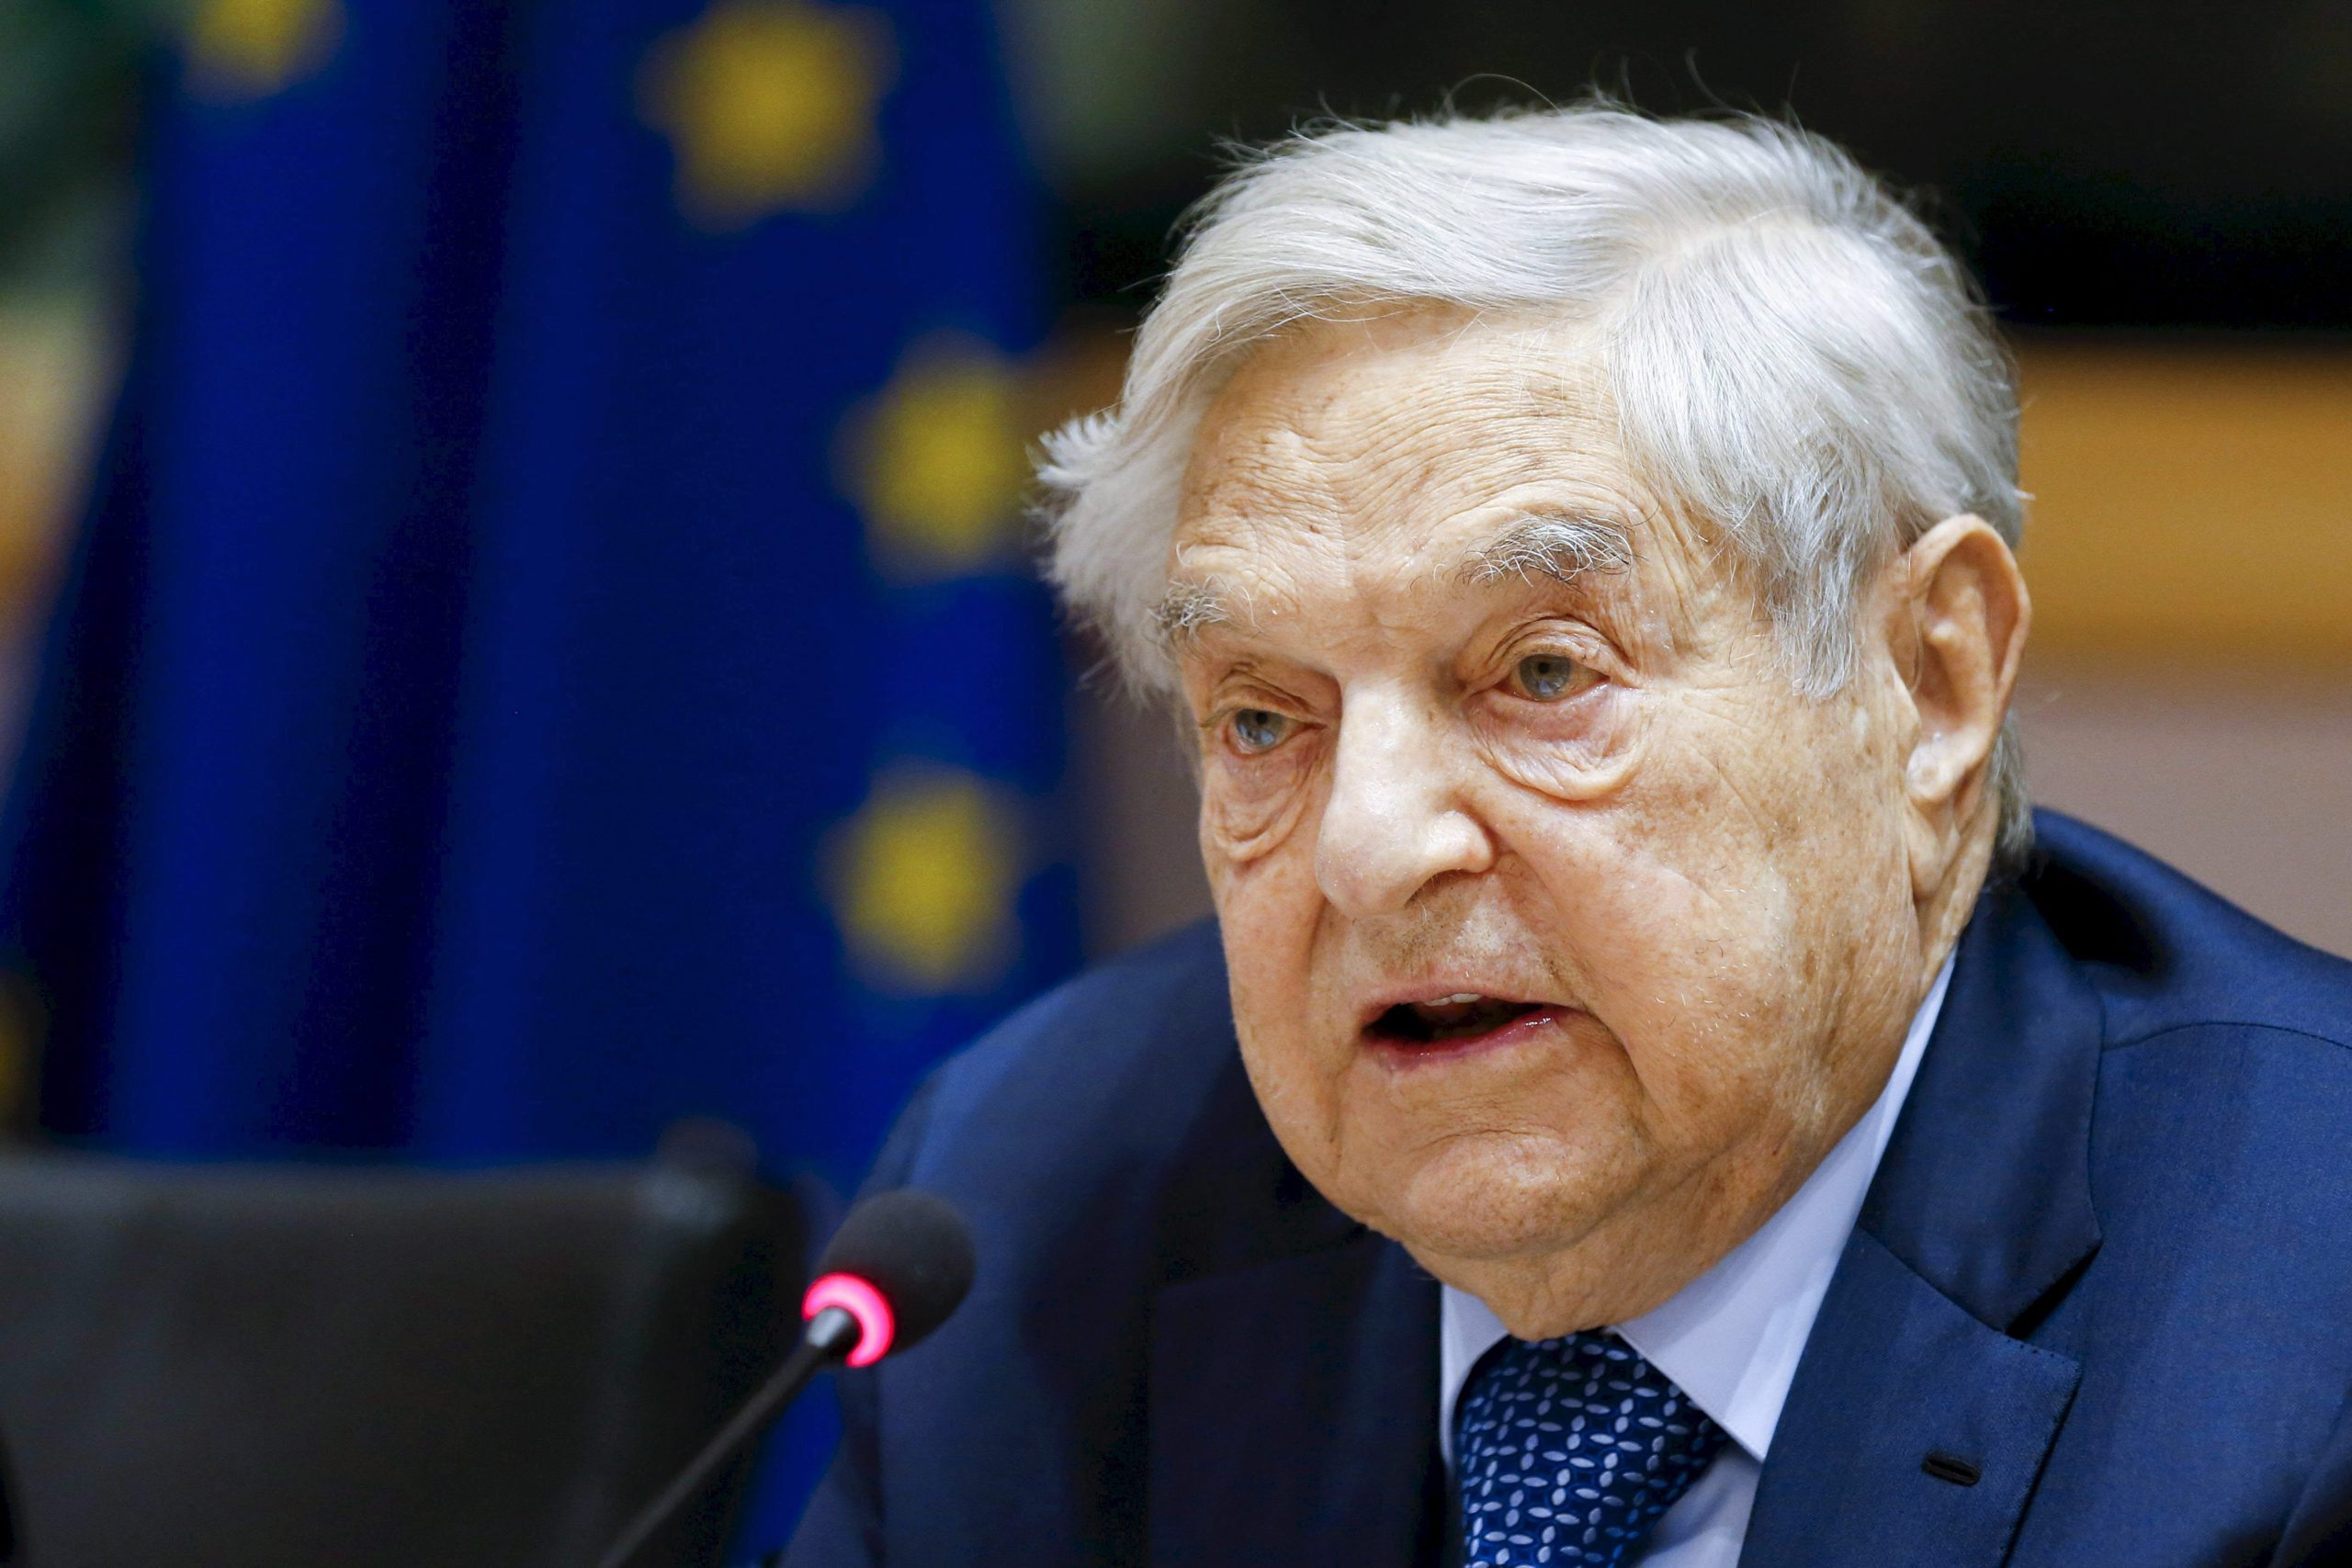 Soros: Europe Must Stand up to Hungary and Poland